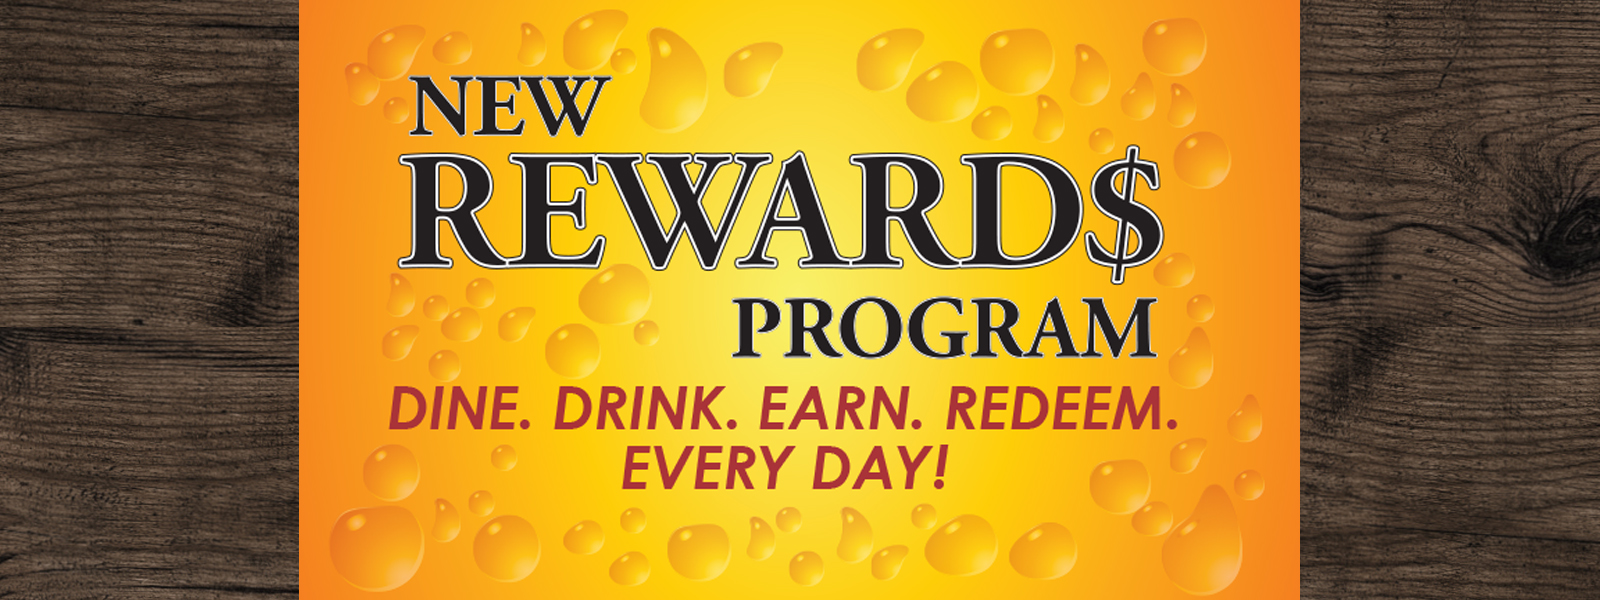 LewsRewards